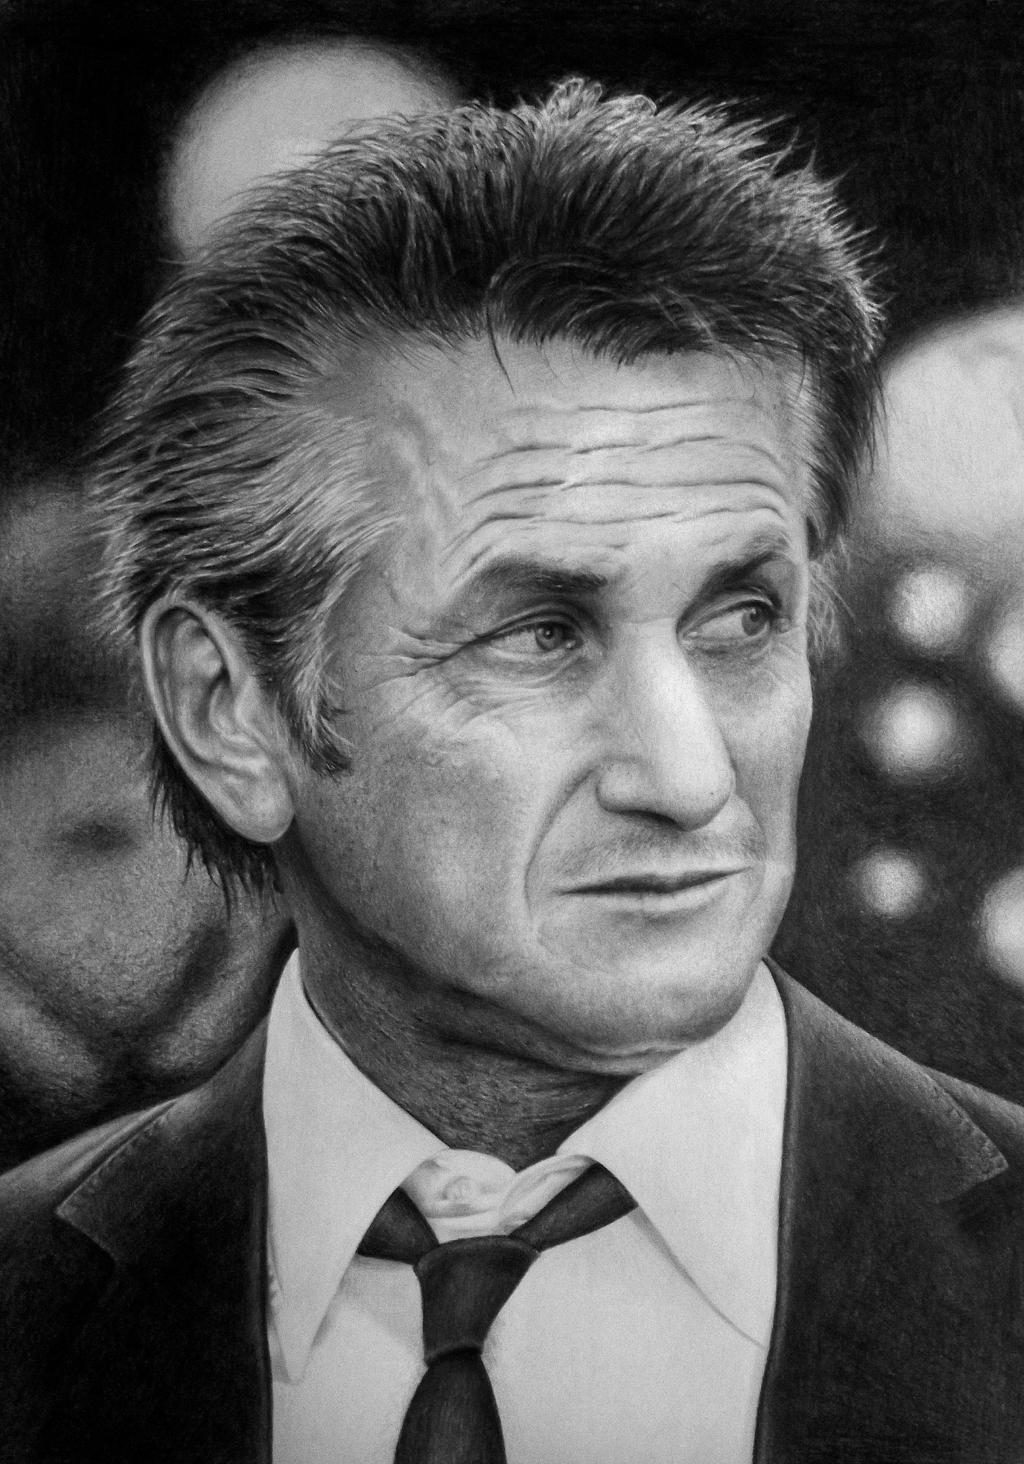 Sean Penn. - 2013 by incasent